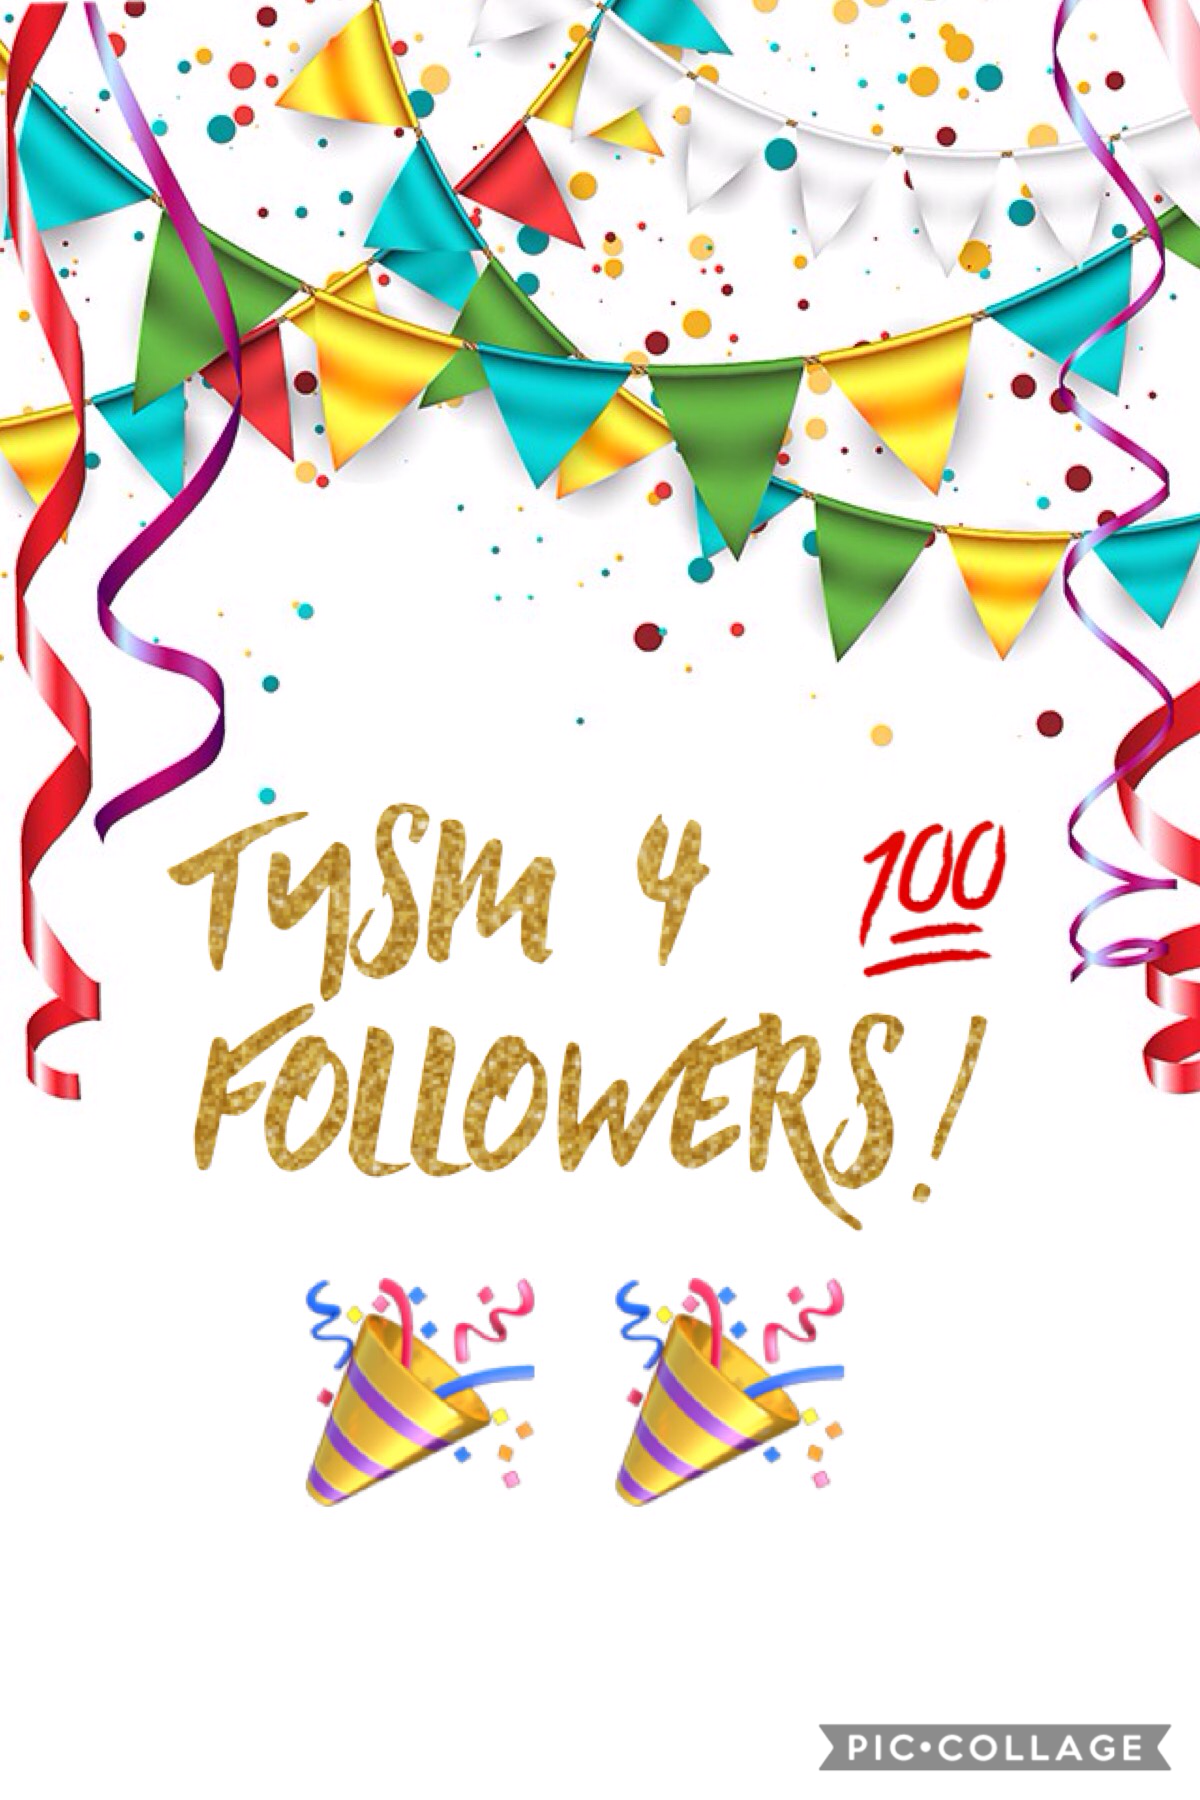 Tappers!  OMG 💯 already?! Thank you so much!